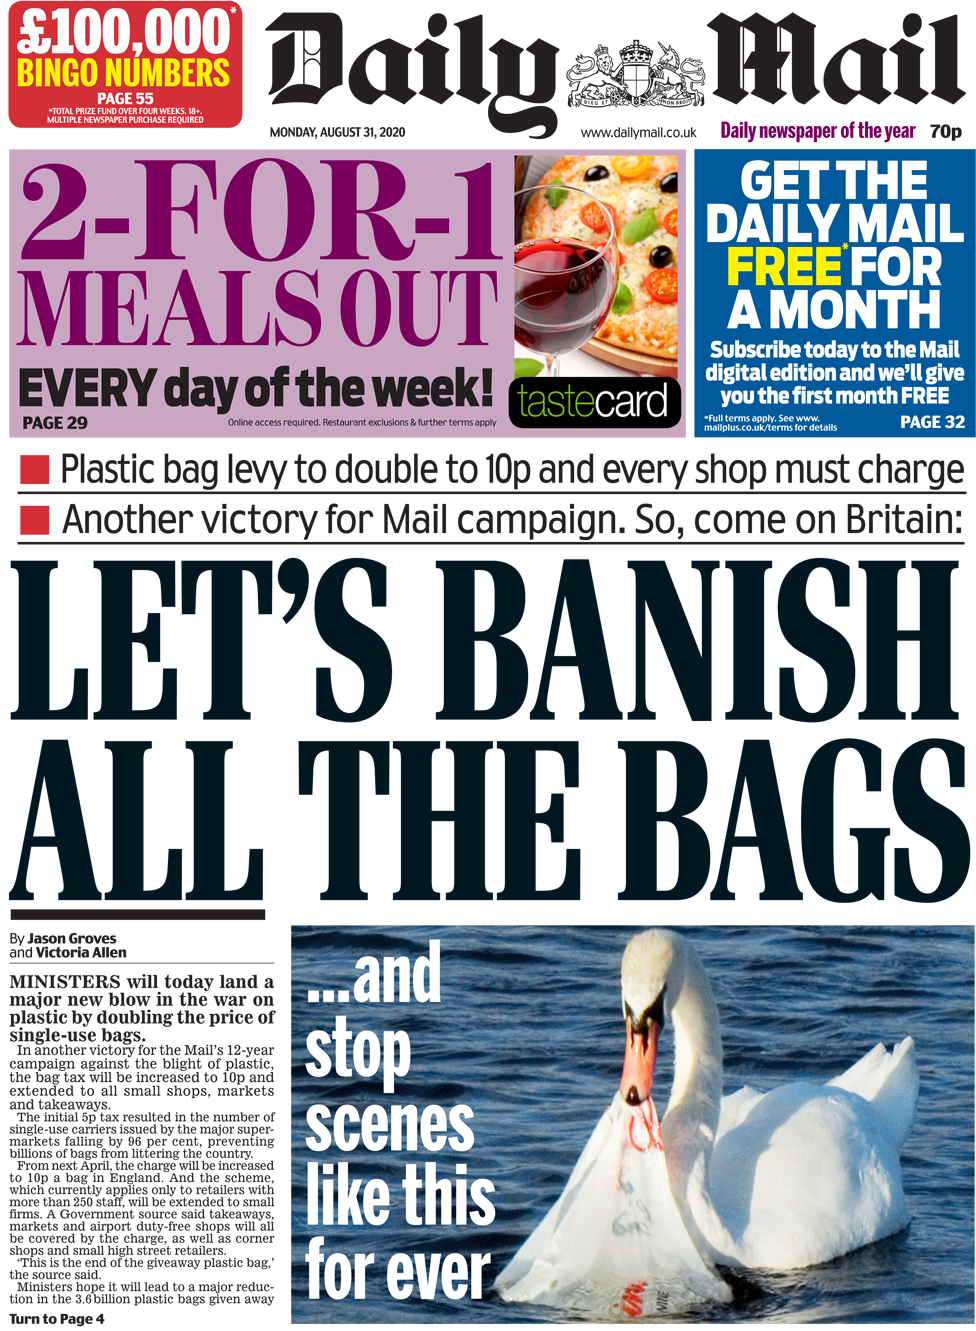 The Daily Mail front page 31 August 2020